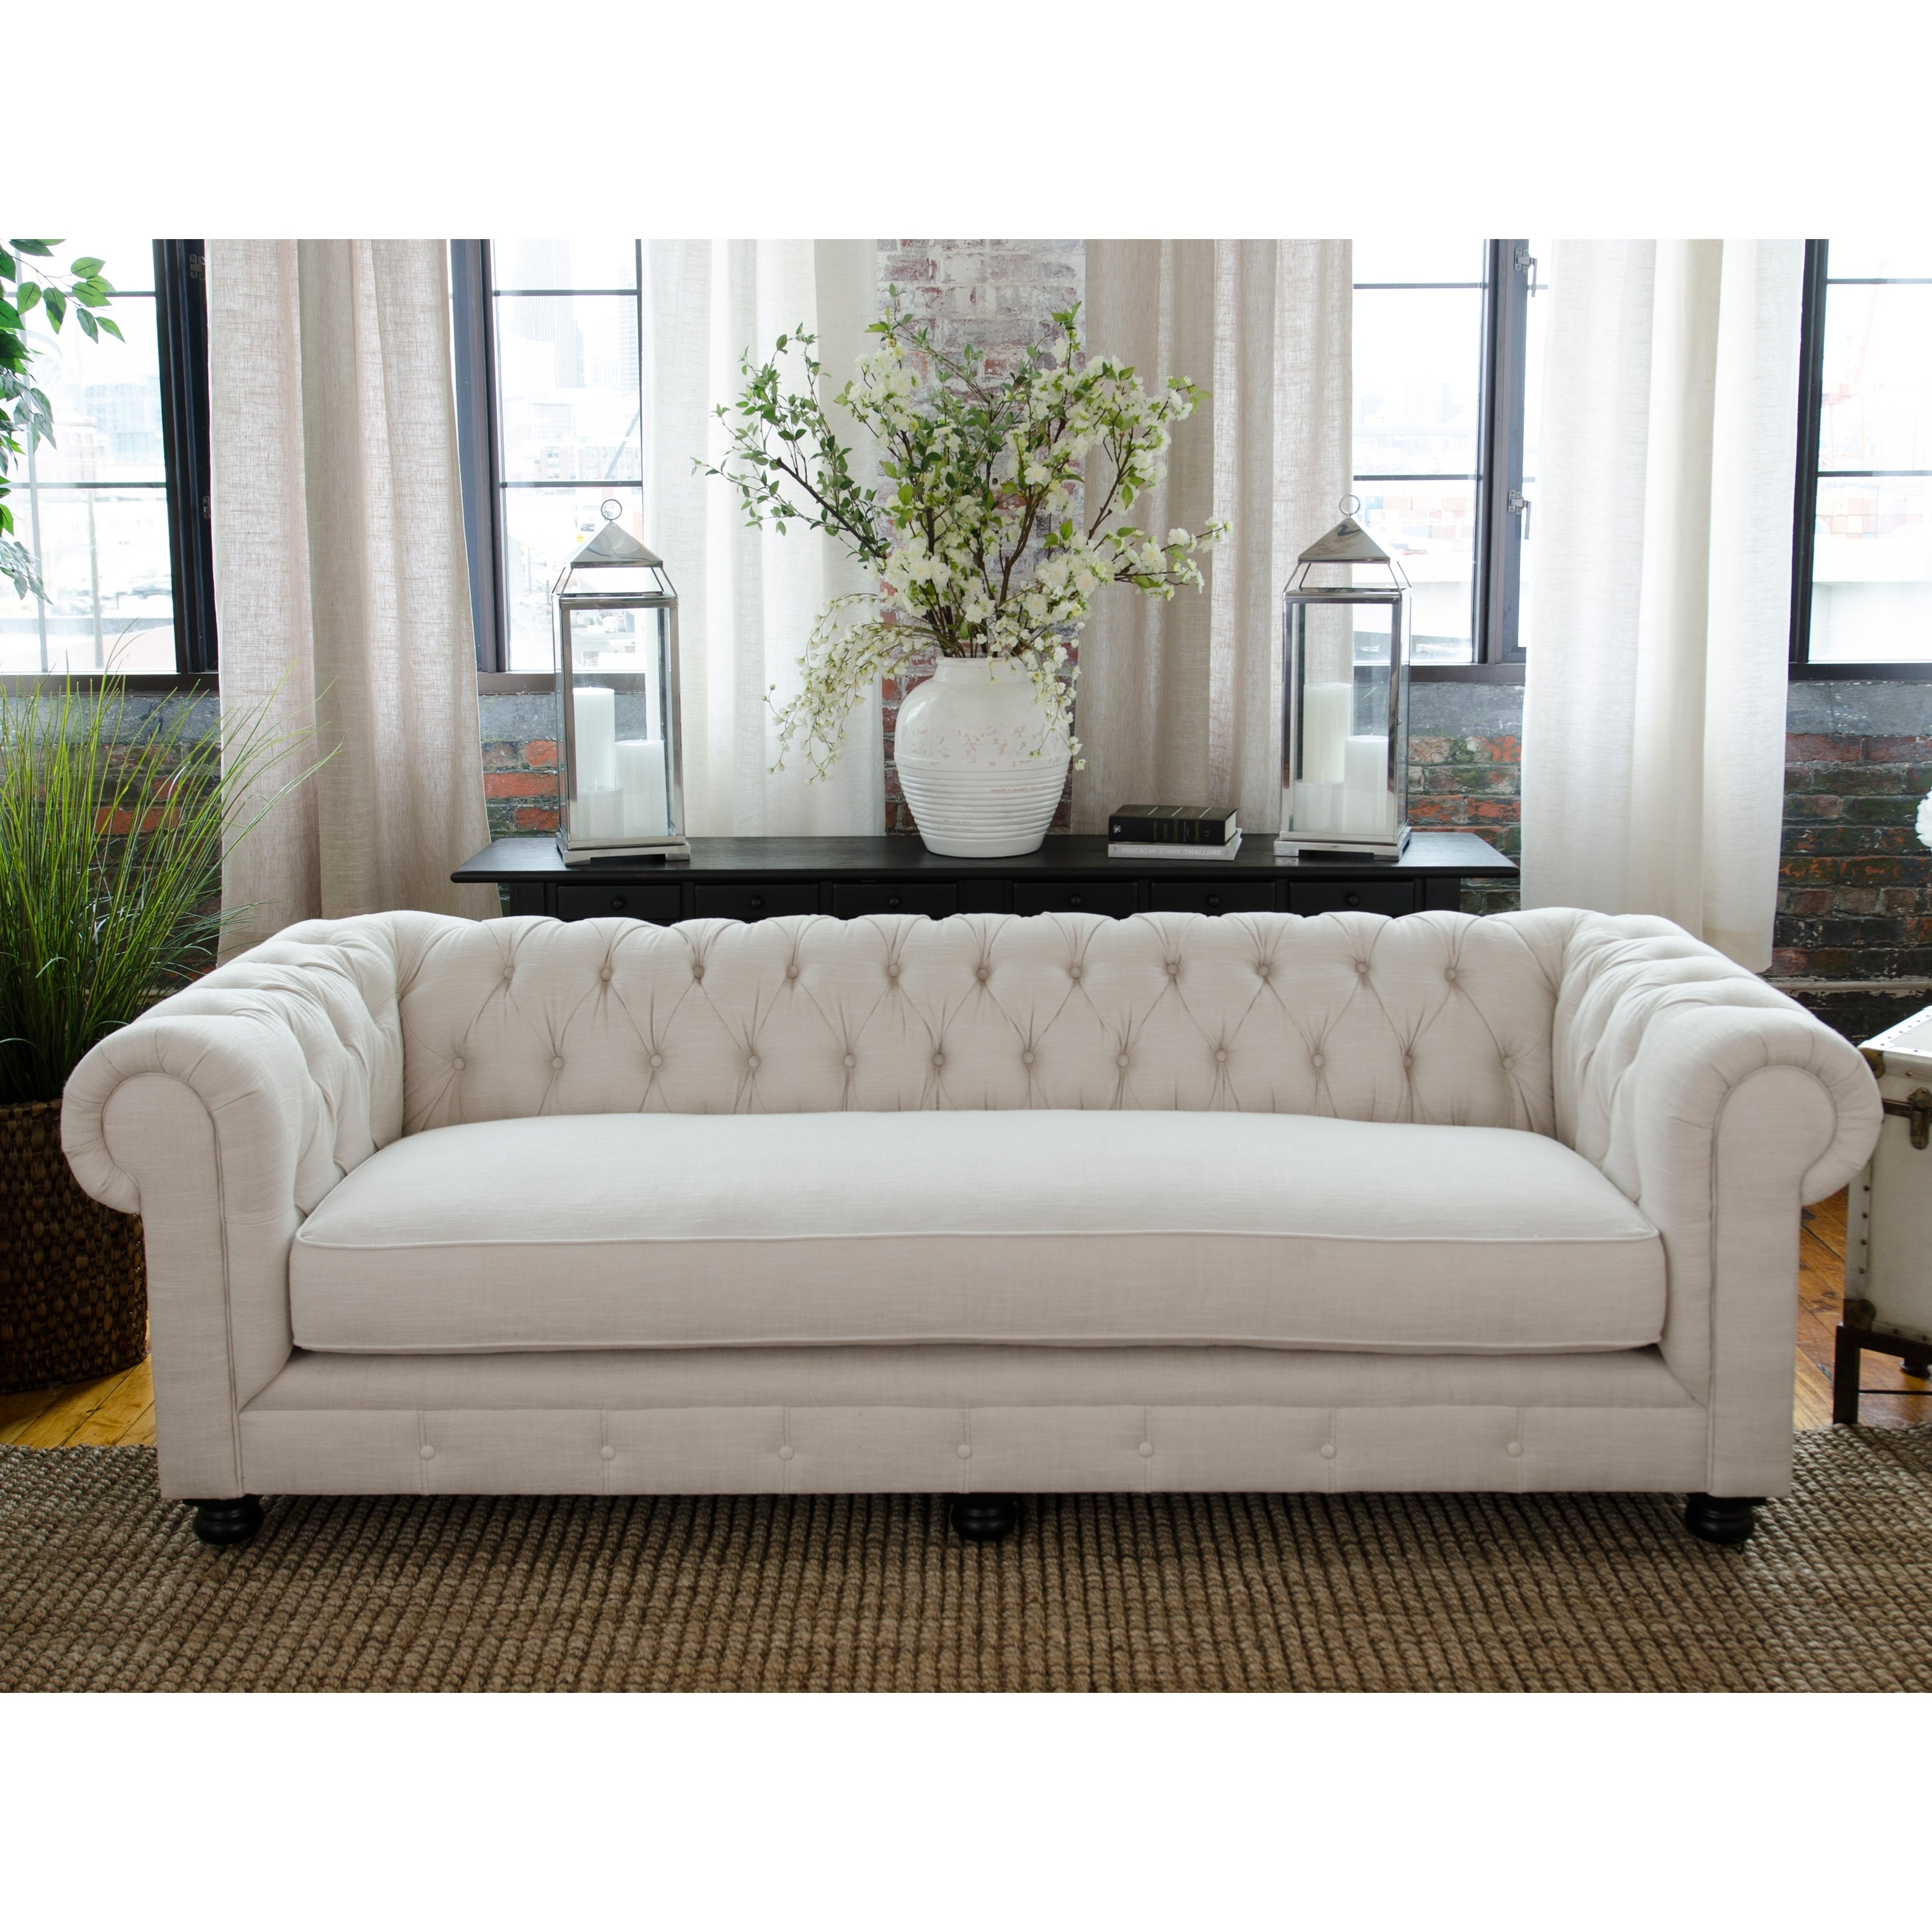 Current Elements Fine Home Estate Fabric Sofa (View 2 of 15)